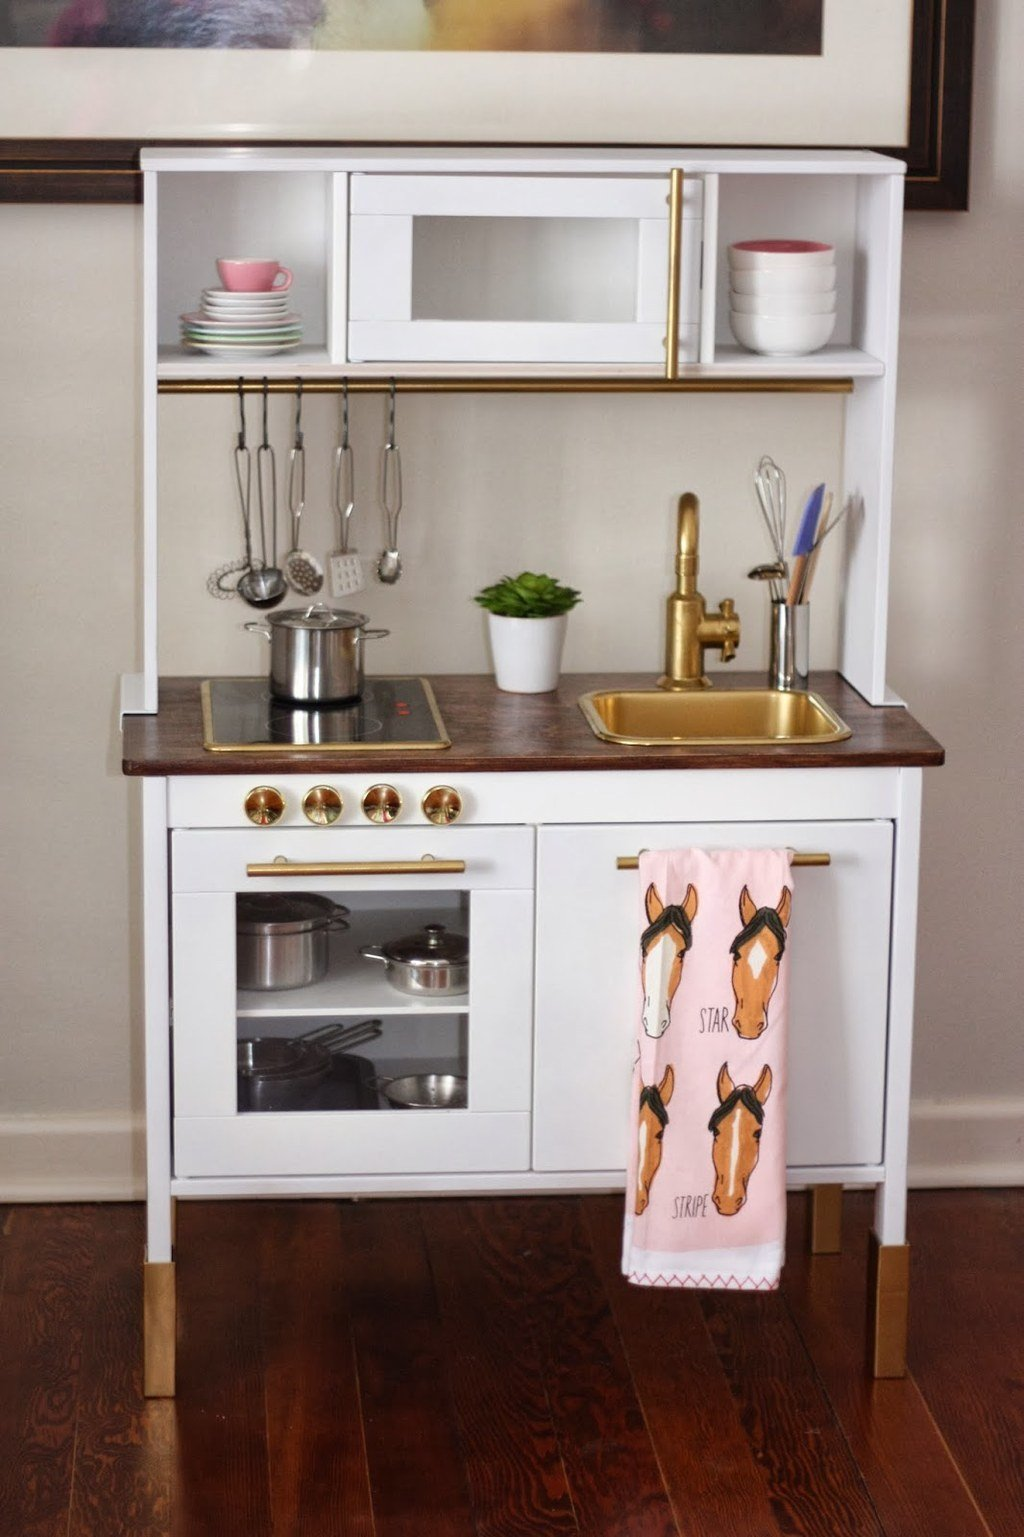 11 Or give the Ikea play kitchen a modern makeover via simphome